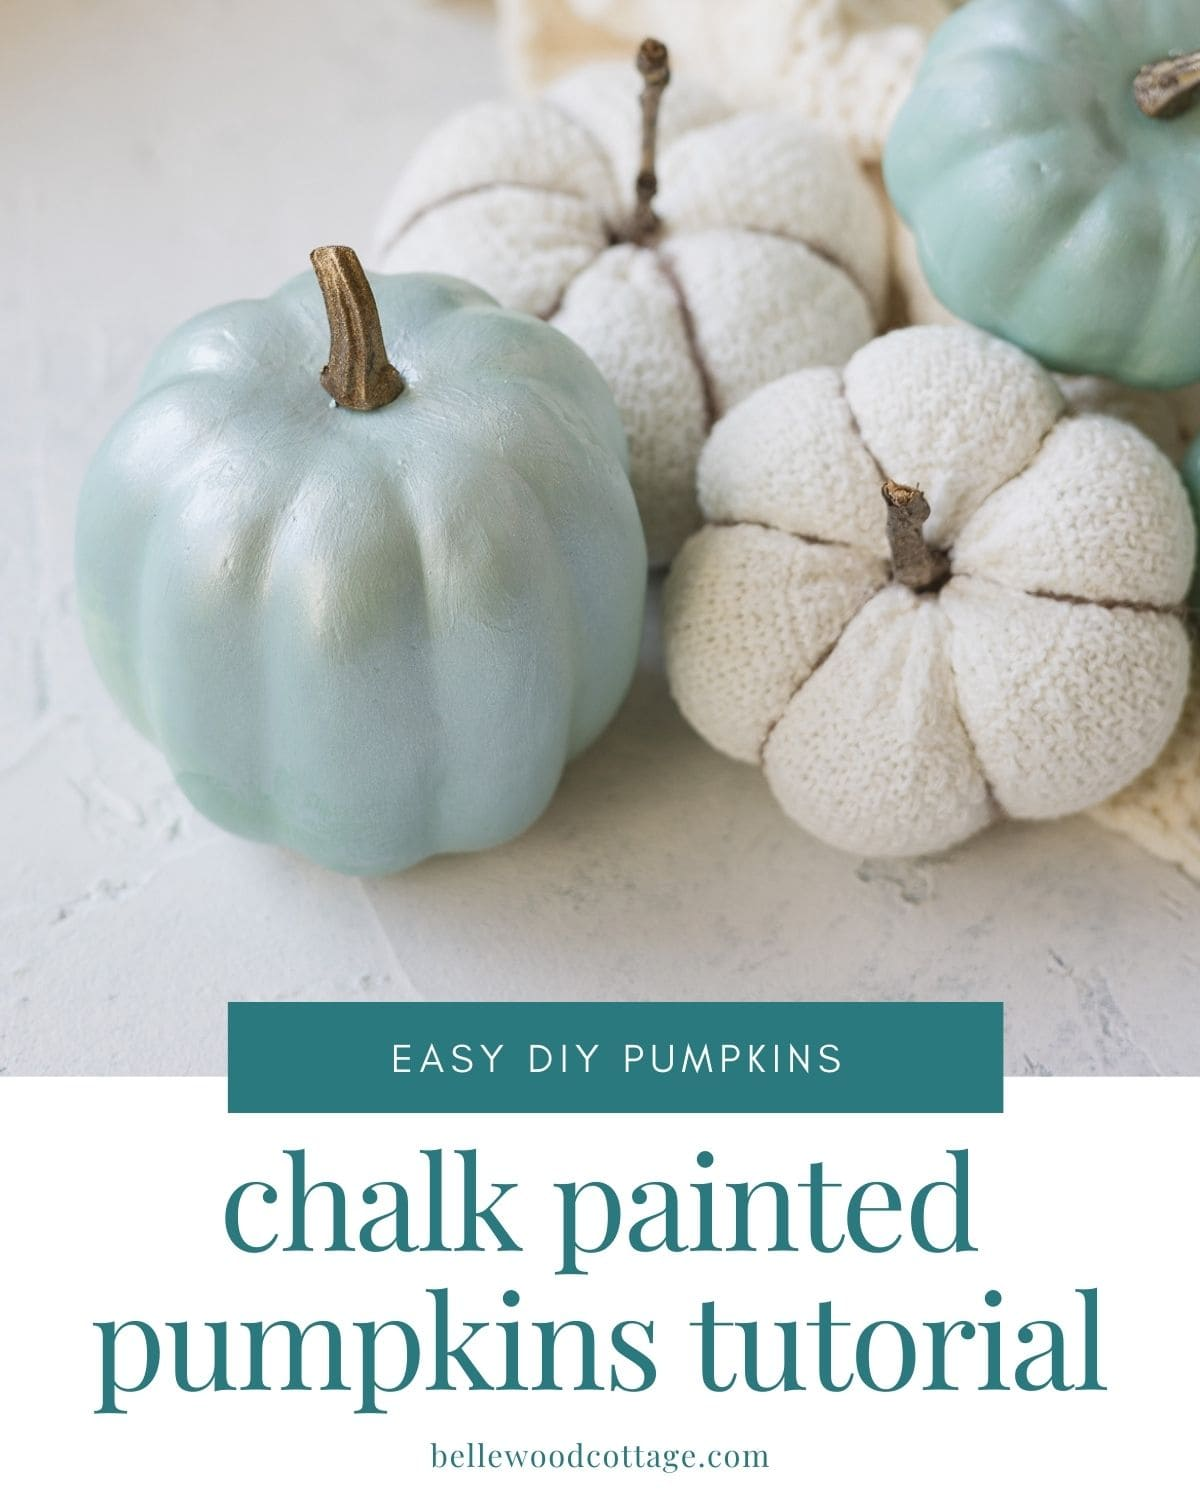 """Chalk painted pumpkins and sock pumpkins with the words, """"Easy DIY Pumpkins, Chalk Painted Pumpkins Tutorial""""."""